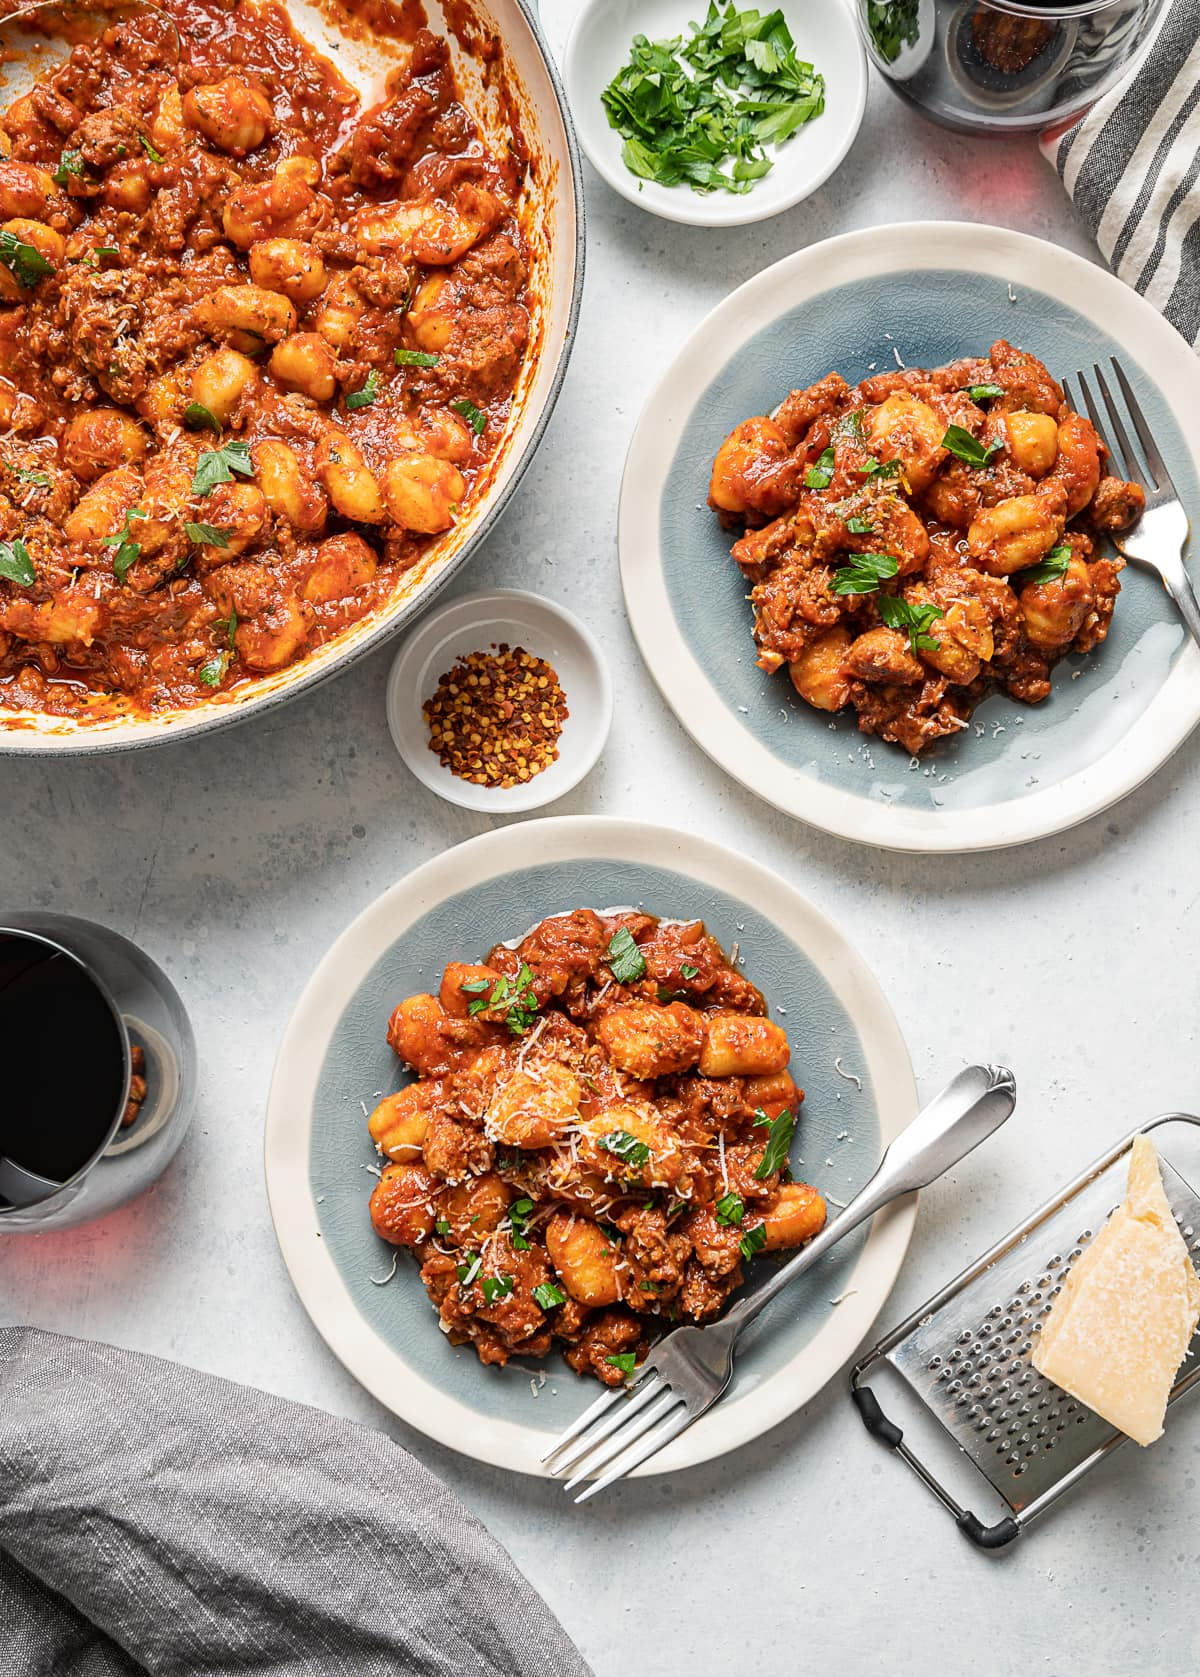 two small plates with red tomato sauce sausage and gnocchi, forks, glasses of wine, small bowls of red pepper flakes and fresh parsley, large bowl of red sauce with sausage and gnocchi